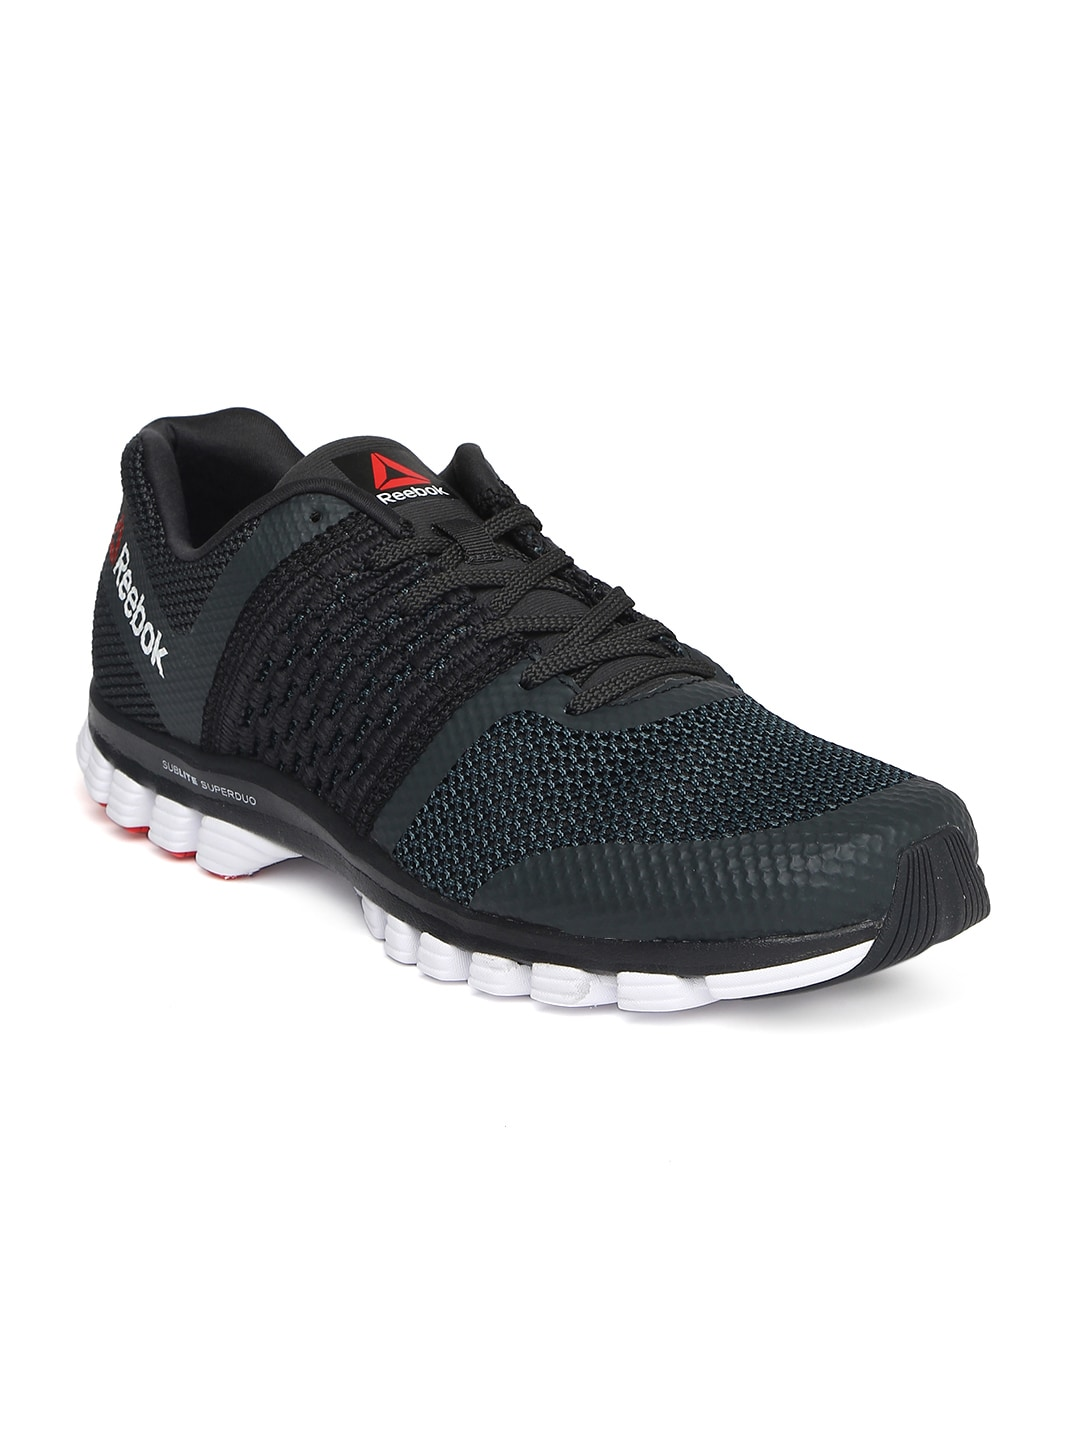 8bca084b64bf53 Reebok bd4064 Men Grey Sublite Transition Running Shoes- Price in India